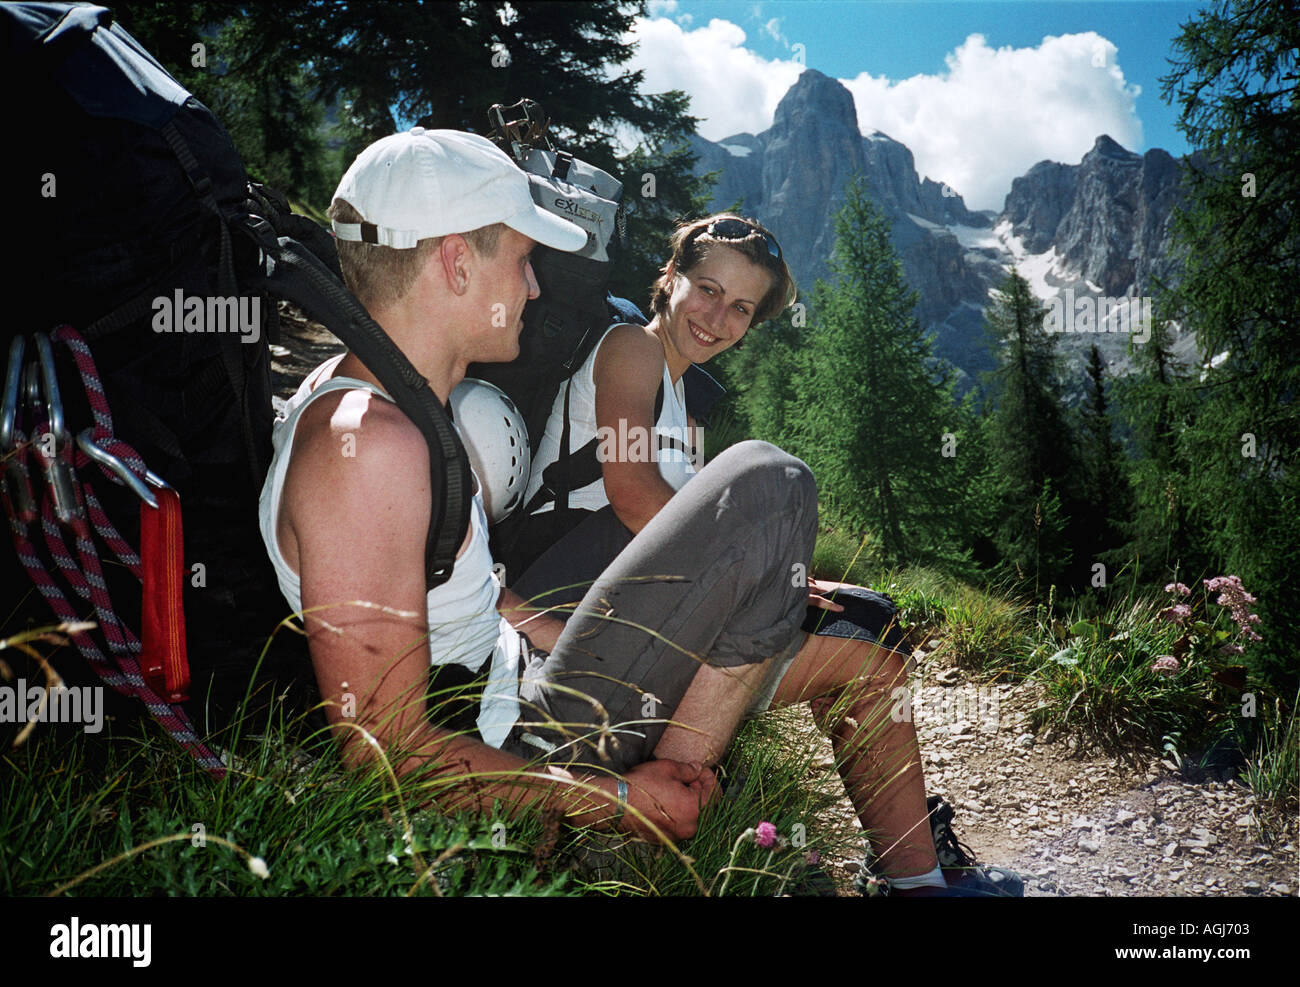 Italy Alps Dolomiti mountains young hikers couple takes a rest on a hike - Stock Image